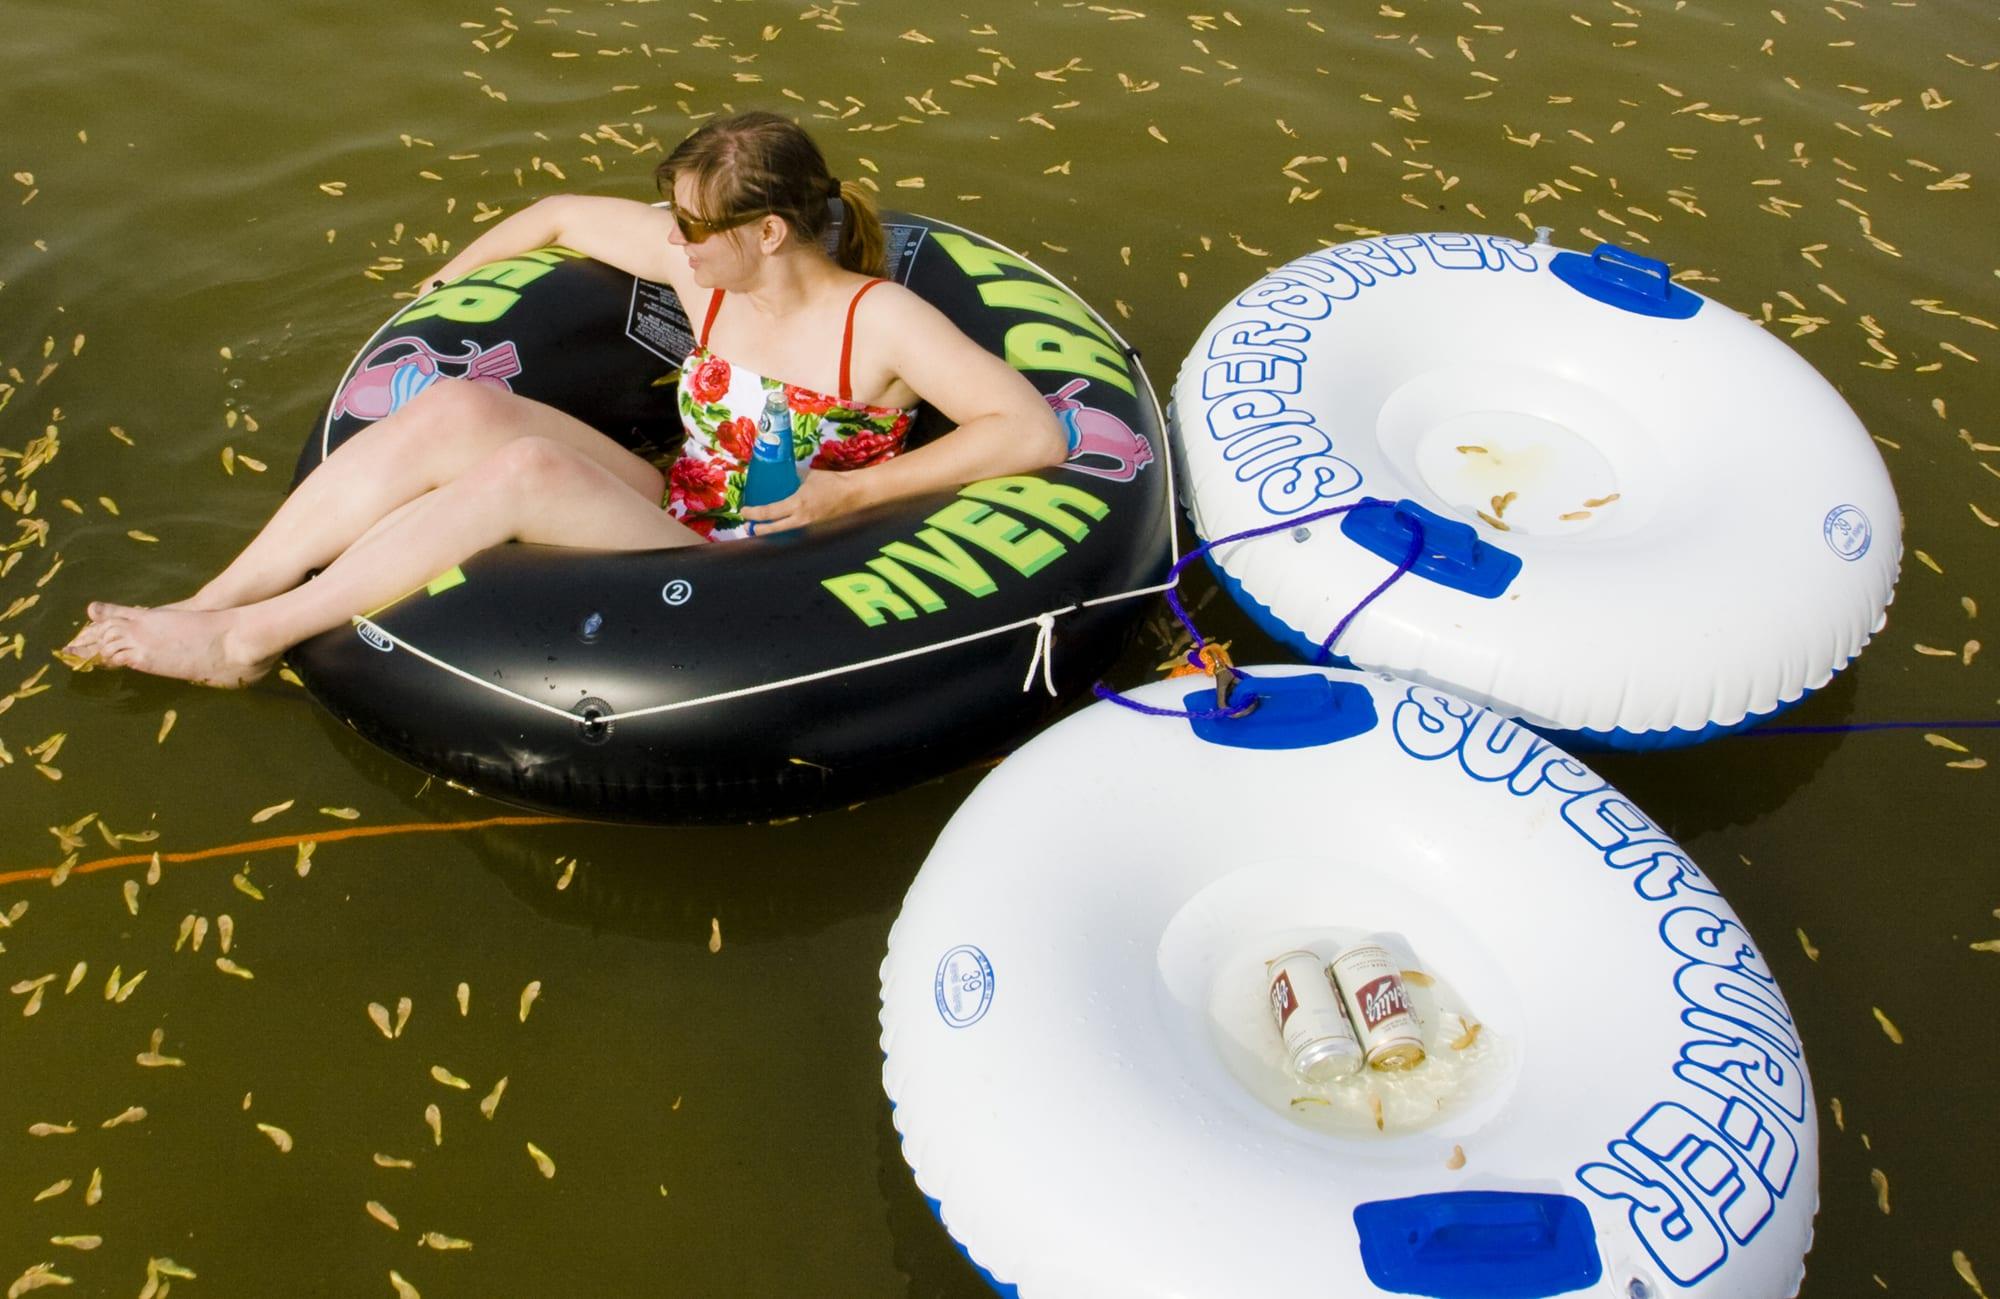 Floating in an inner tube on the lake - Memorial Day Weekend in Decatur, Michigan